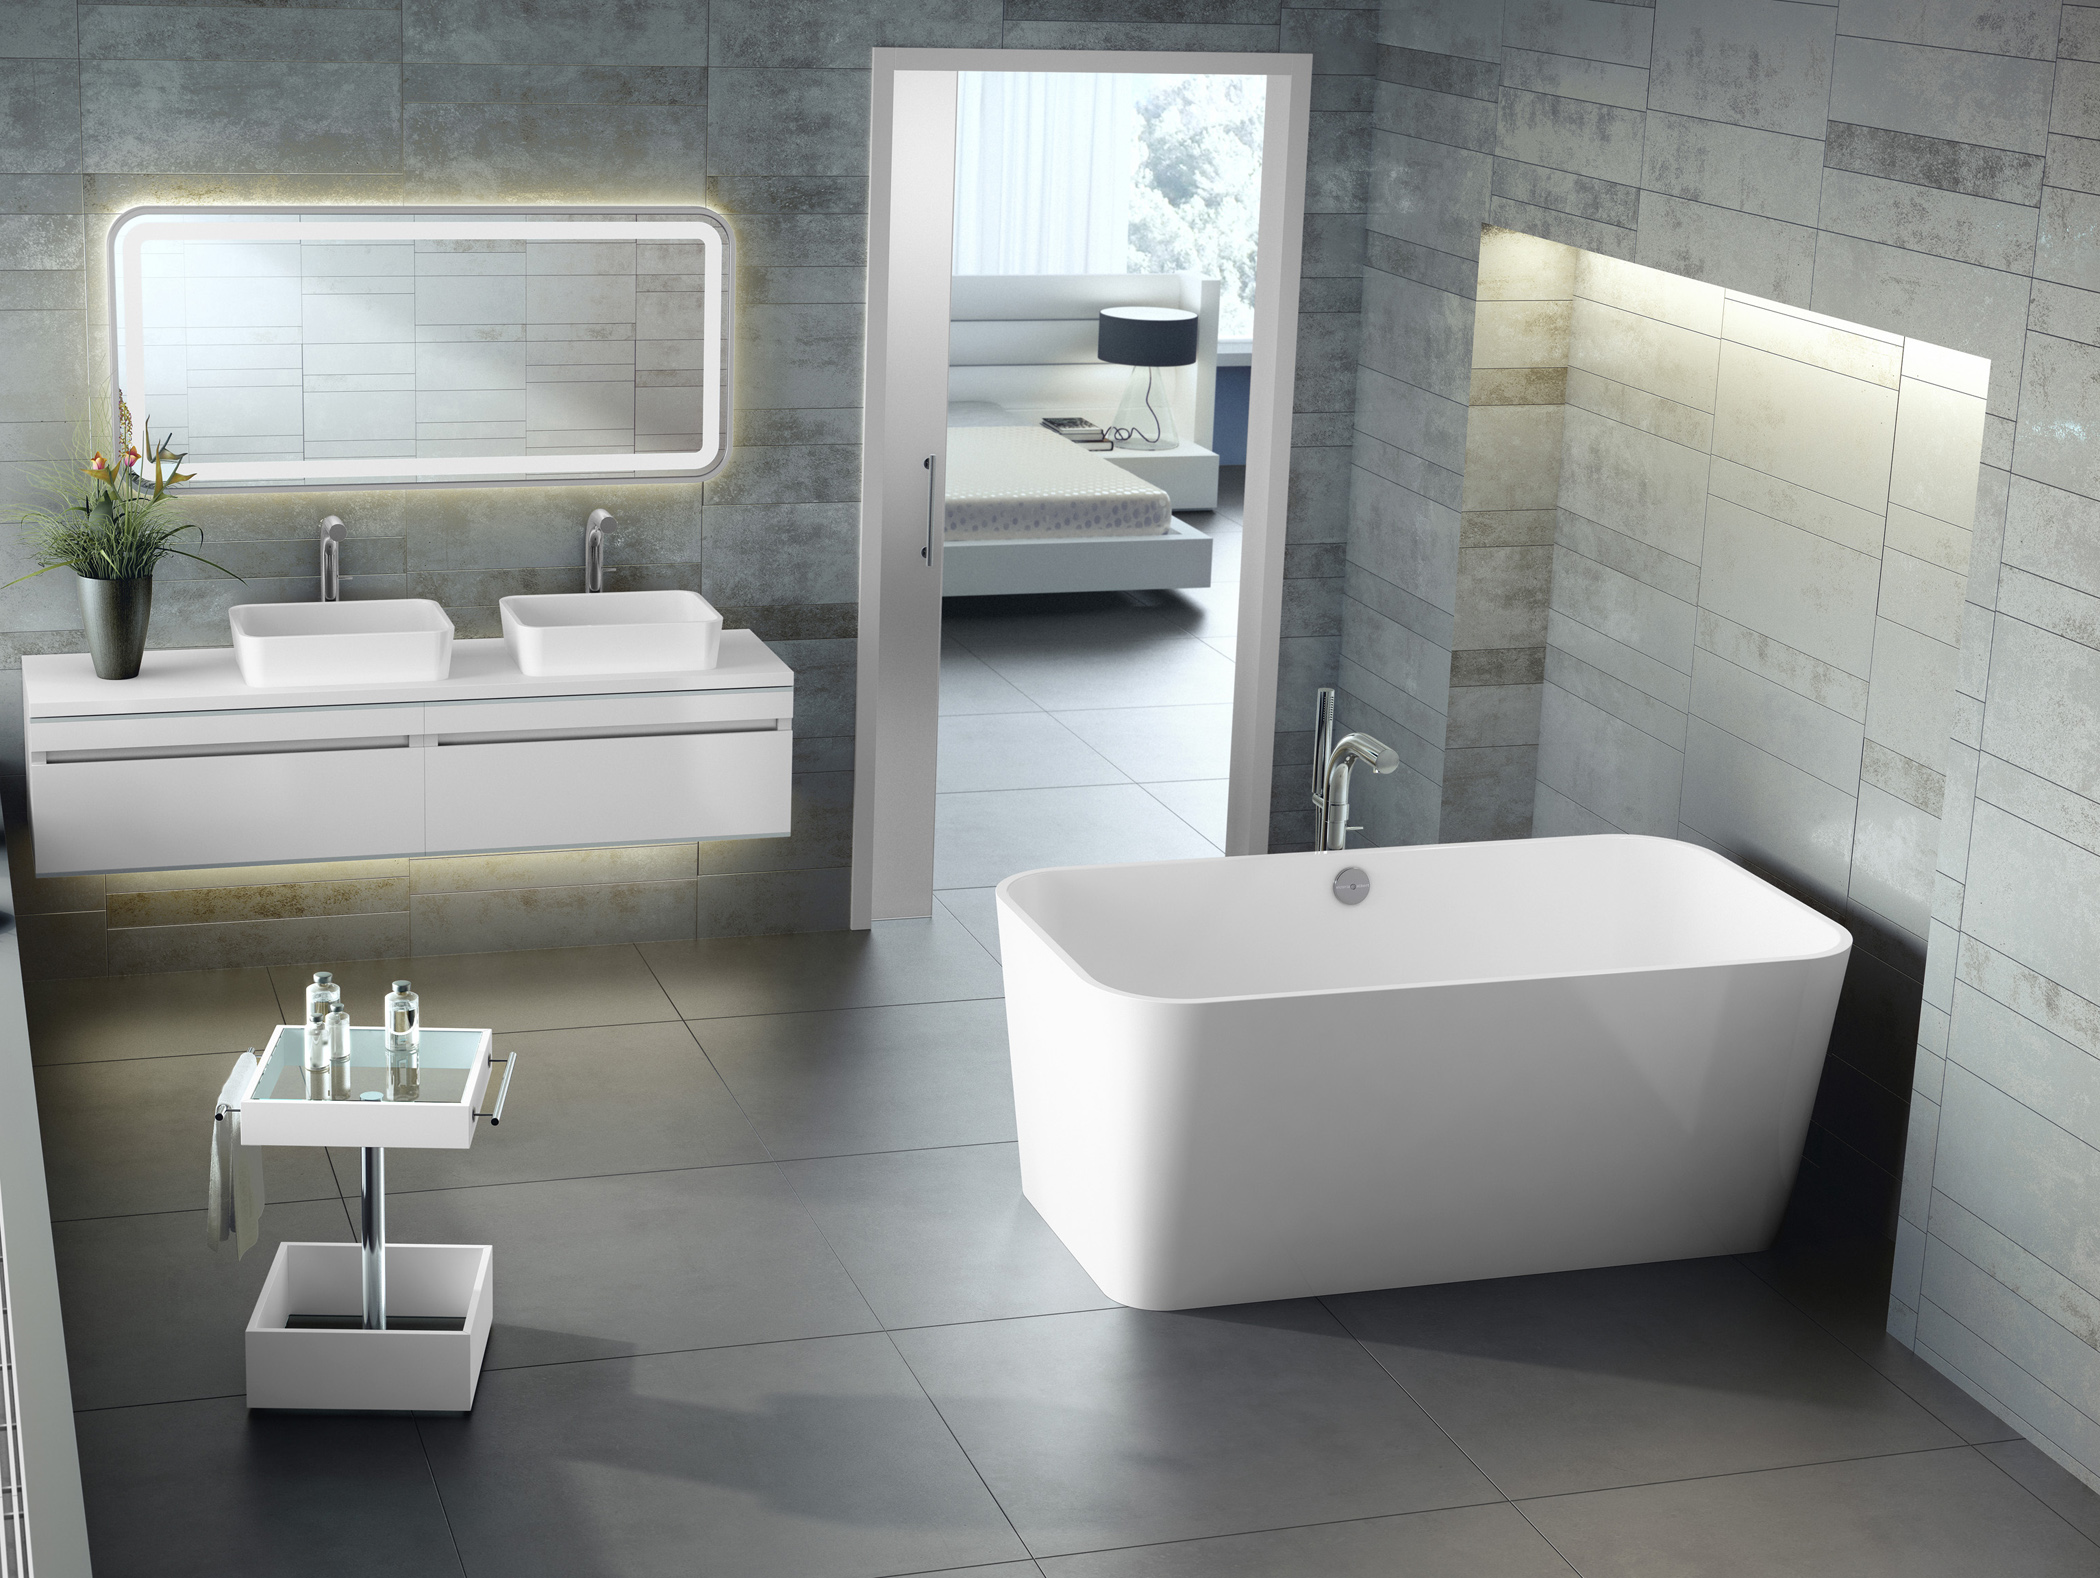 Modern Design of Victoria and Albert Tubs for Your Bathroom ... on small bathroom with skylight, small white bathroom with tub, small cabin bathroom designs, small bathroom with freestanding tub, small bathroom with shower and bath, small 1 2 bathroom designs, small bathroom designs 2014, small bathroom wall tile designs, small bathroom designs and colors, small bathroom floor designs, old-fashioned bathroom tub, small bathroom designs half, small bathroom designs on a budget, small bathroom with soaking tub, small bathroom shower designs, small claw foot tub, small bathroom clawfoot tub, bathroom corner tub, small spa bathroom designs,